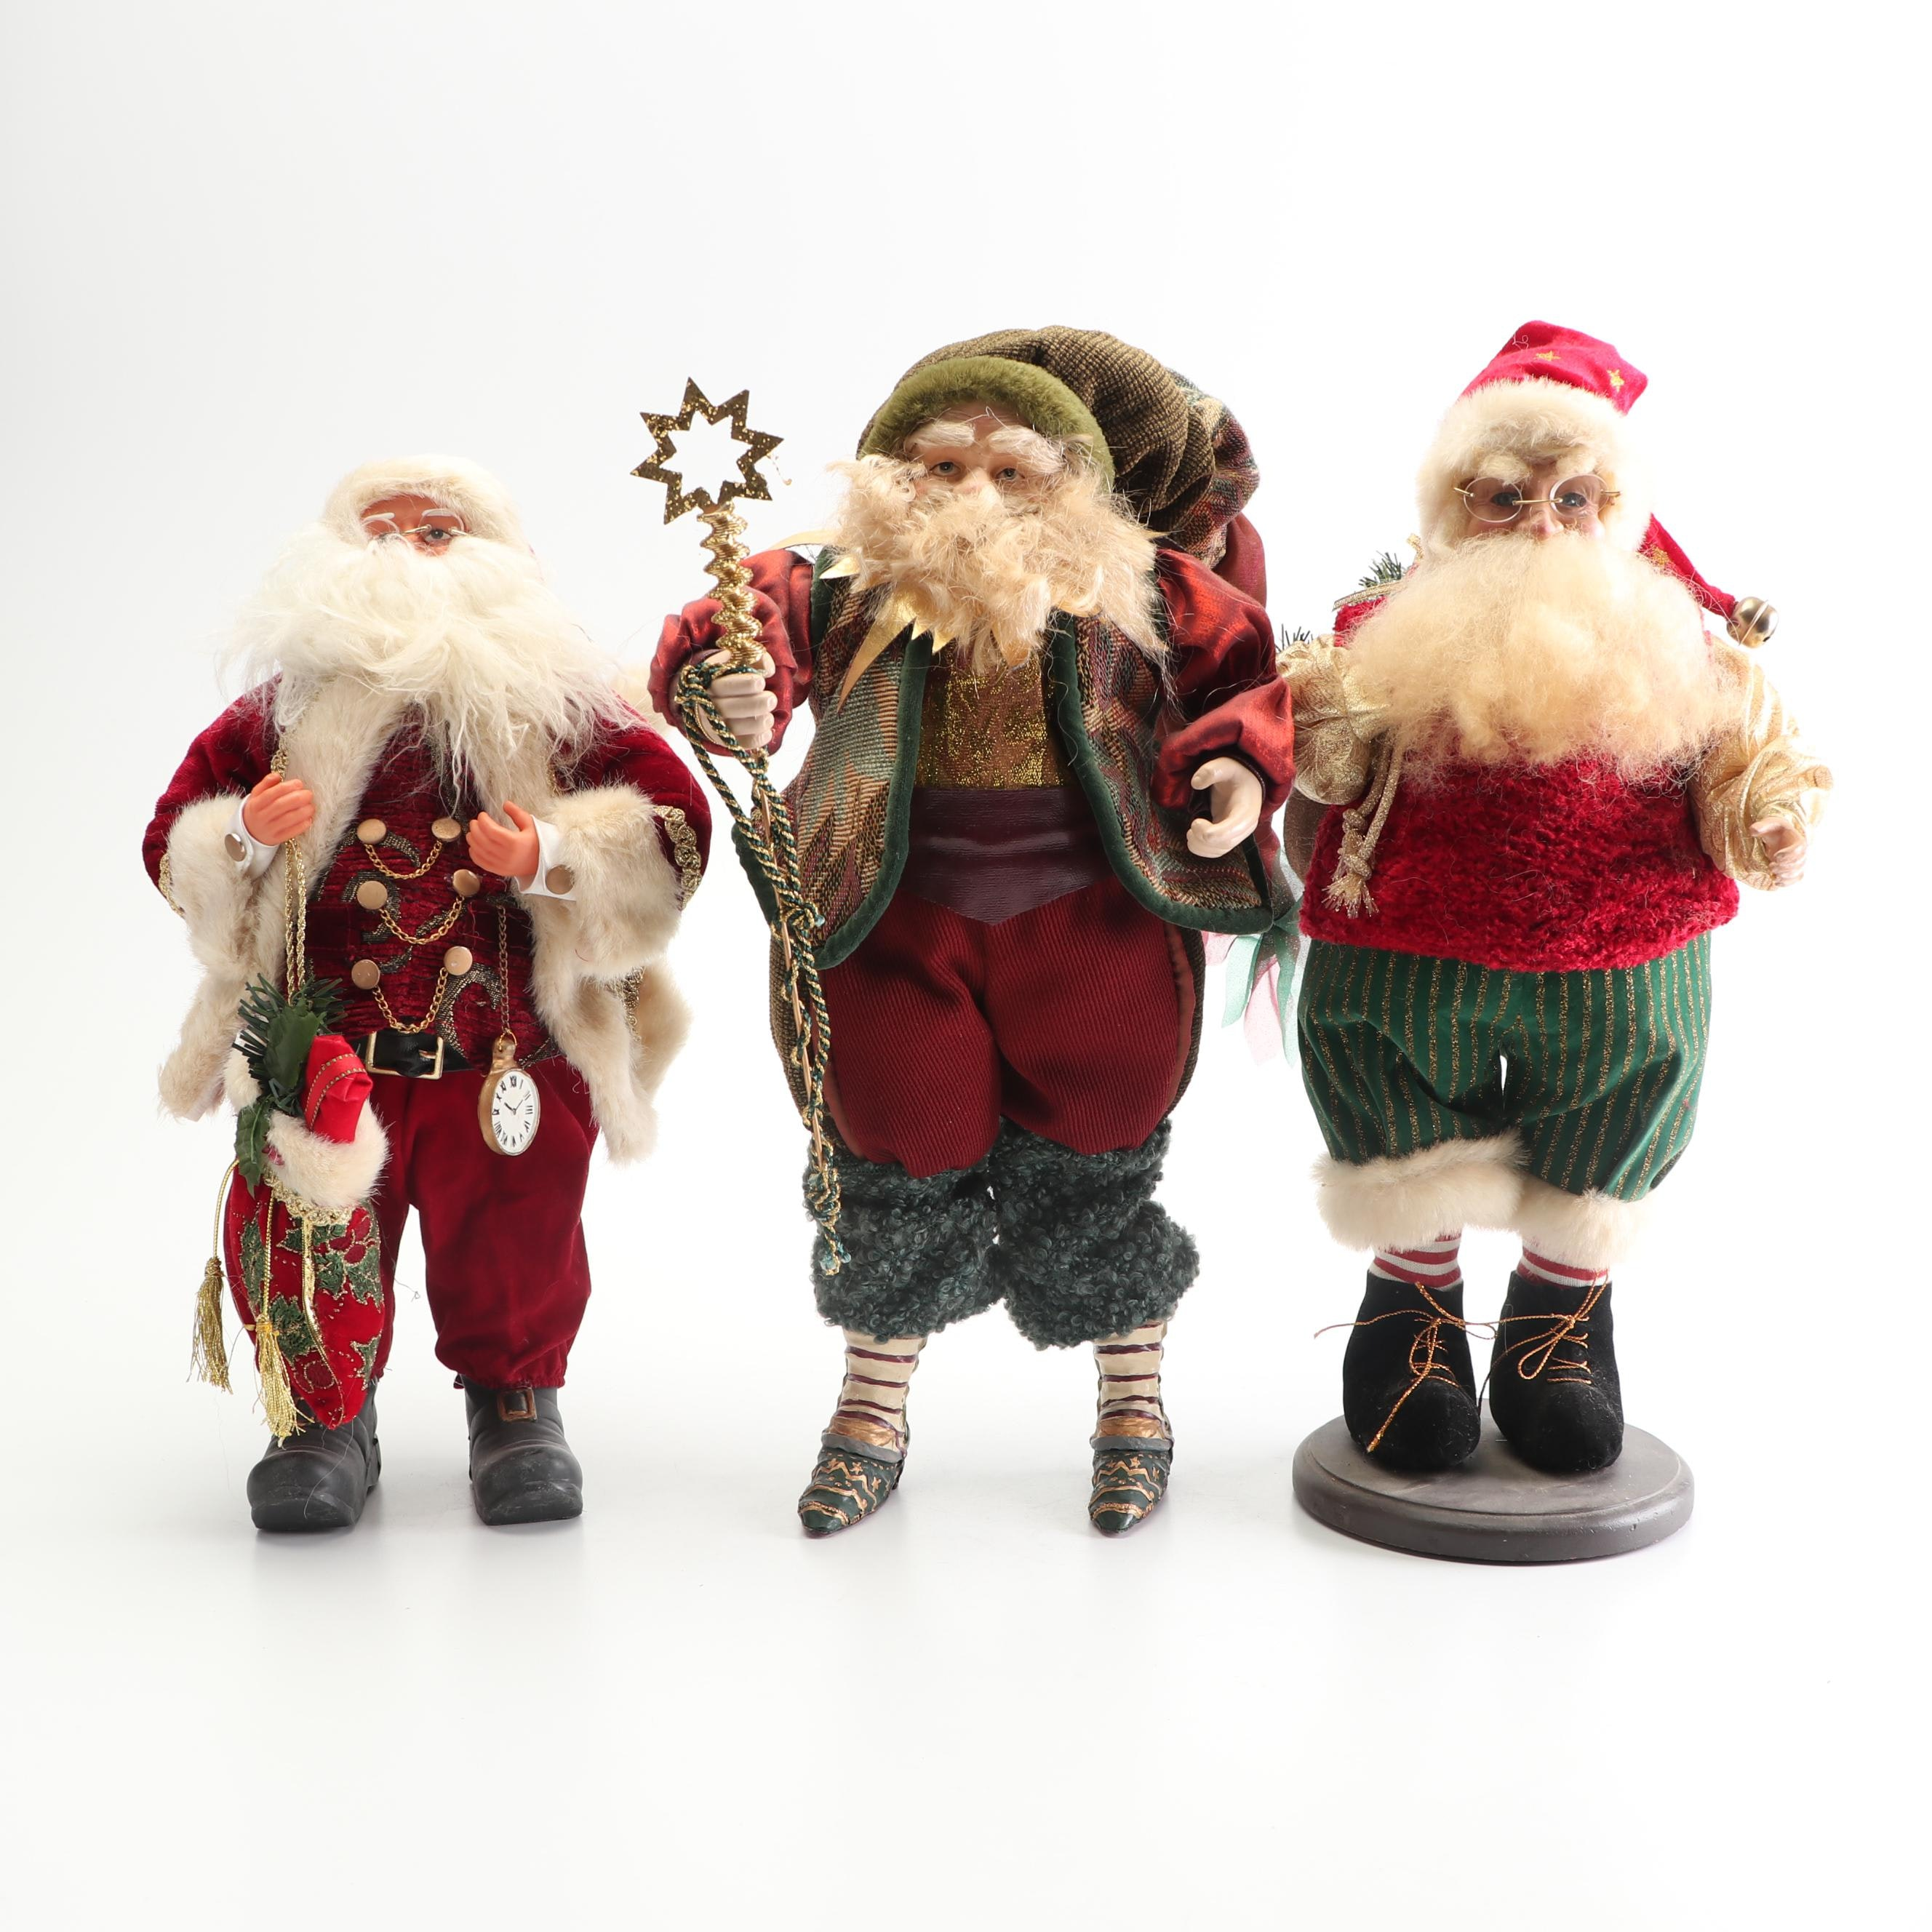 Plush Santa Claus Figurines with Faux Fur and Pine Accents